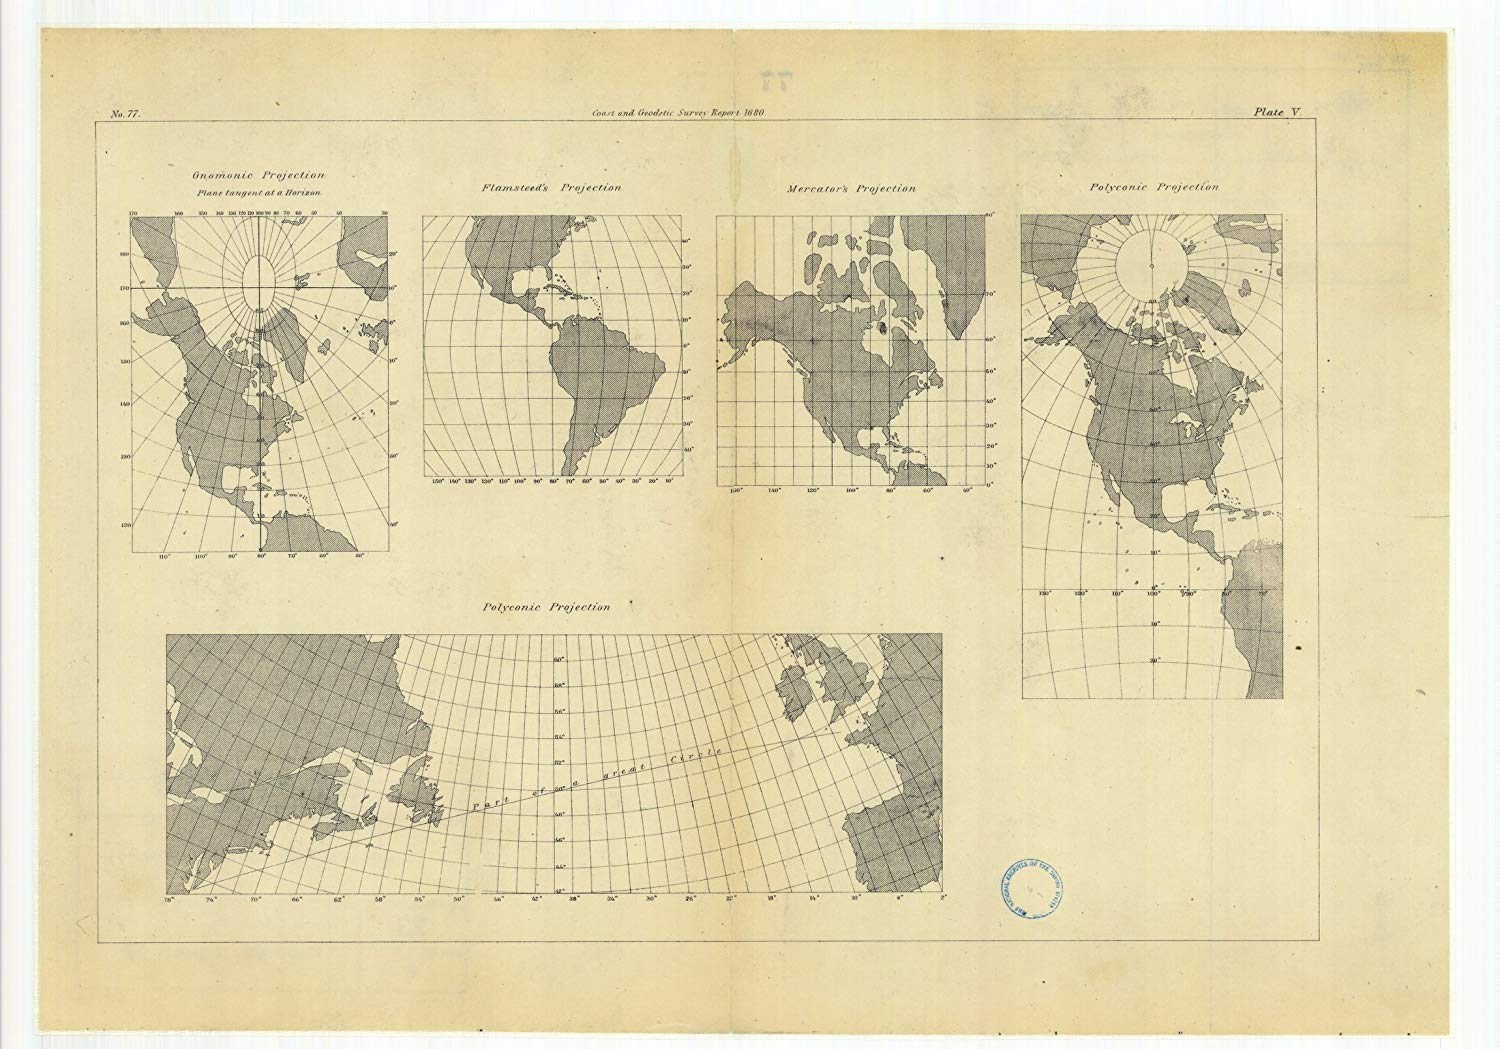 Vintography 8 x 12 inch 1880 Ohio Old Nautical map Drawing Chart Gnomonic Projection Flamsteed's Projection, Mercator's Projection Polyconic Projections from US Coast & Geodetic Survey x6810